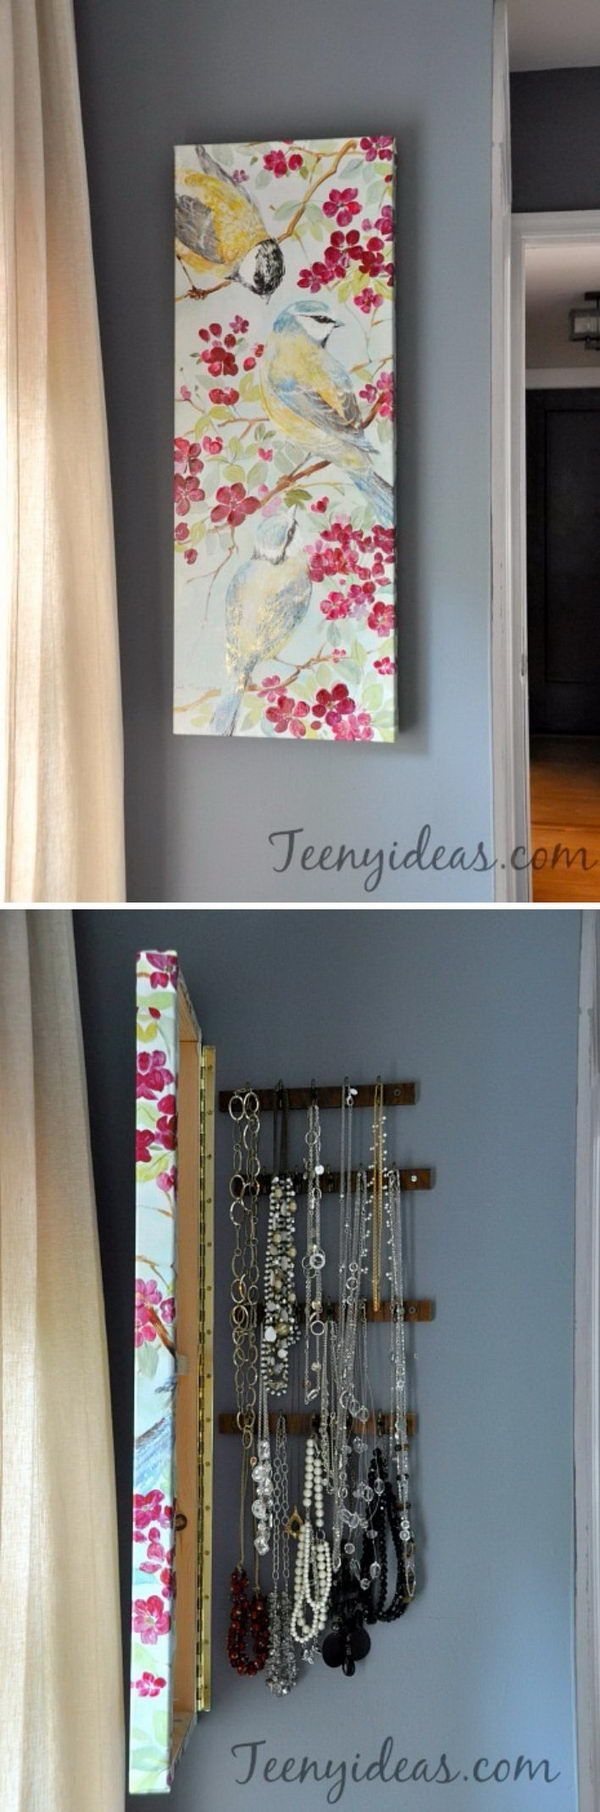 15 Chic Hidden Storage Ideas Wall Canvas Jewelry